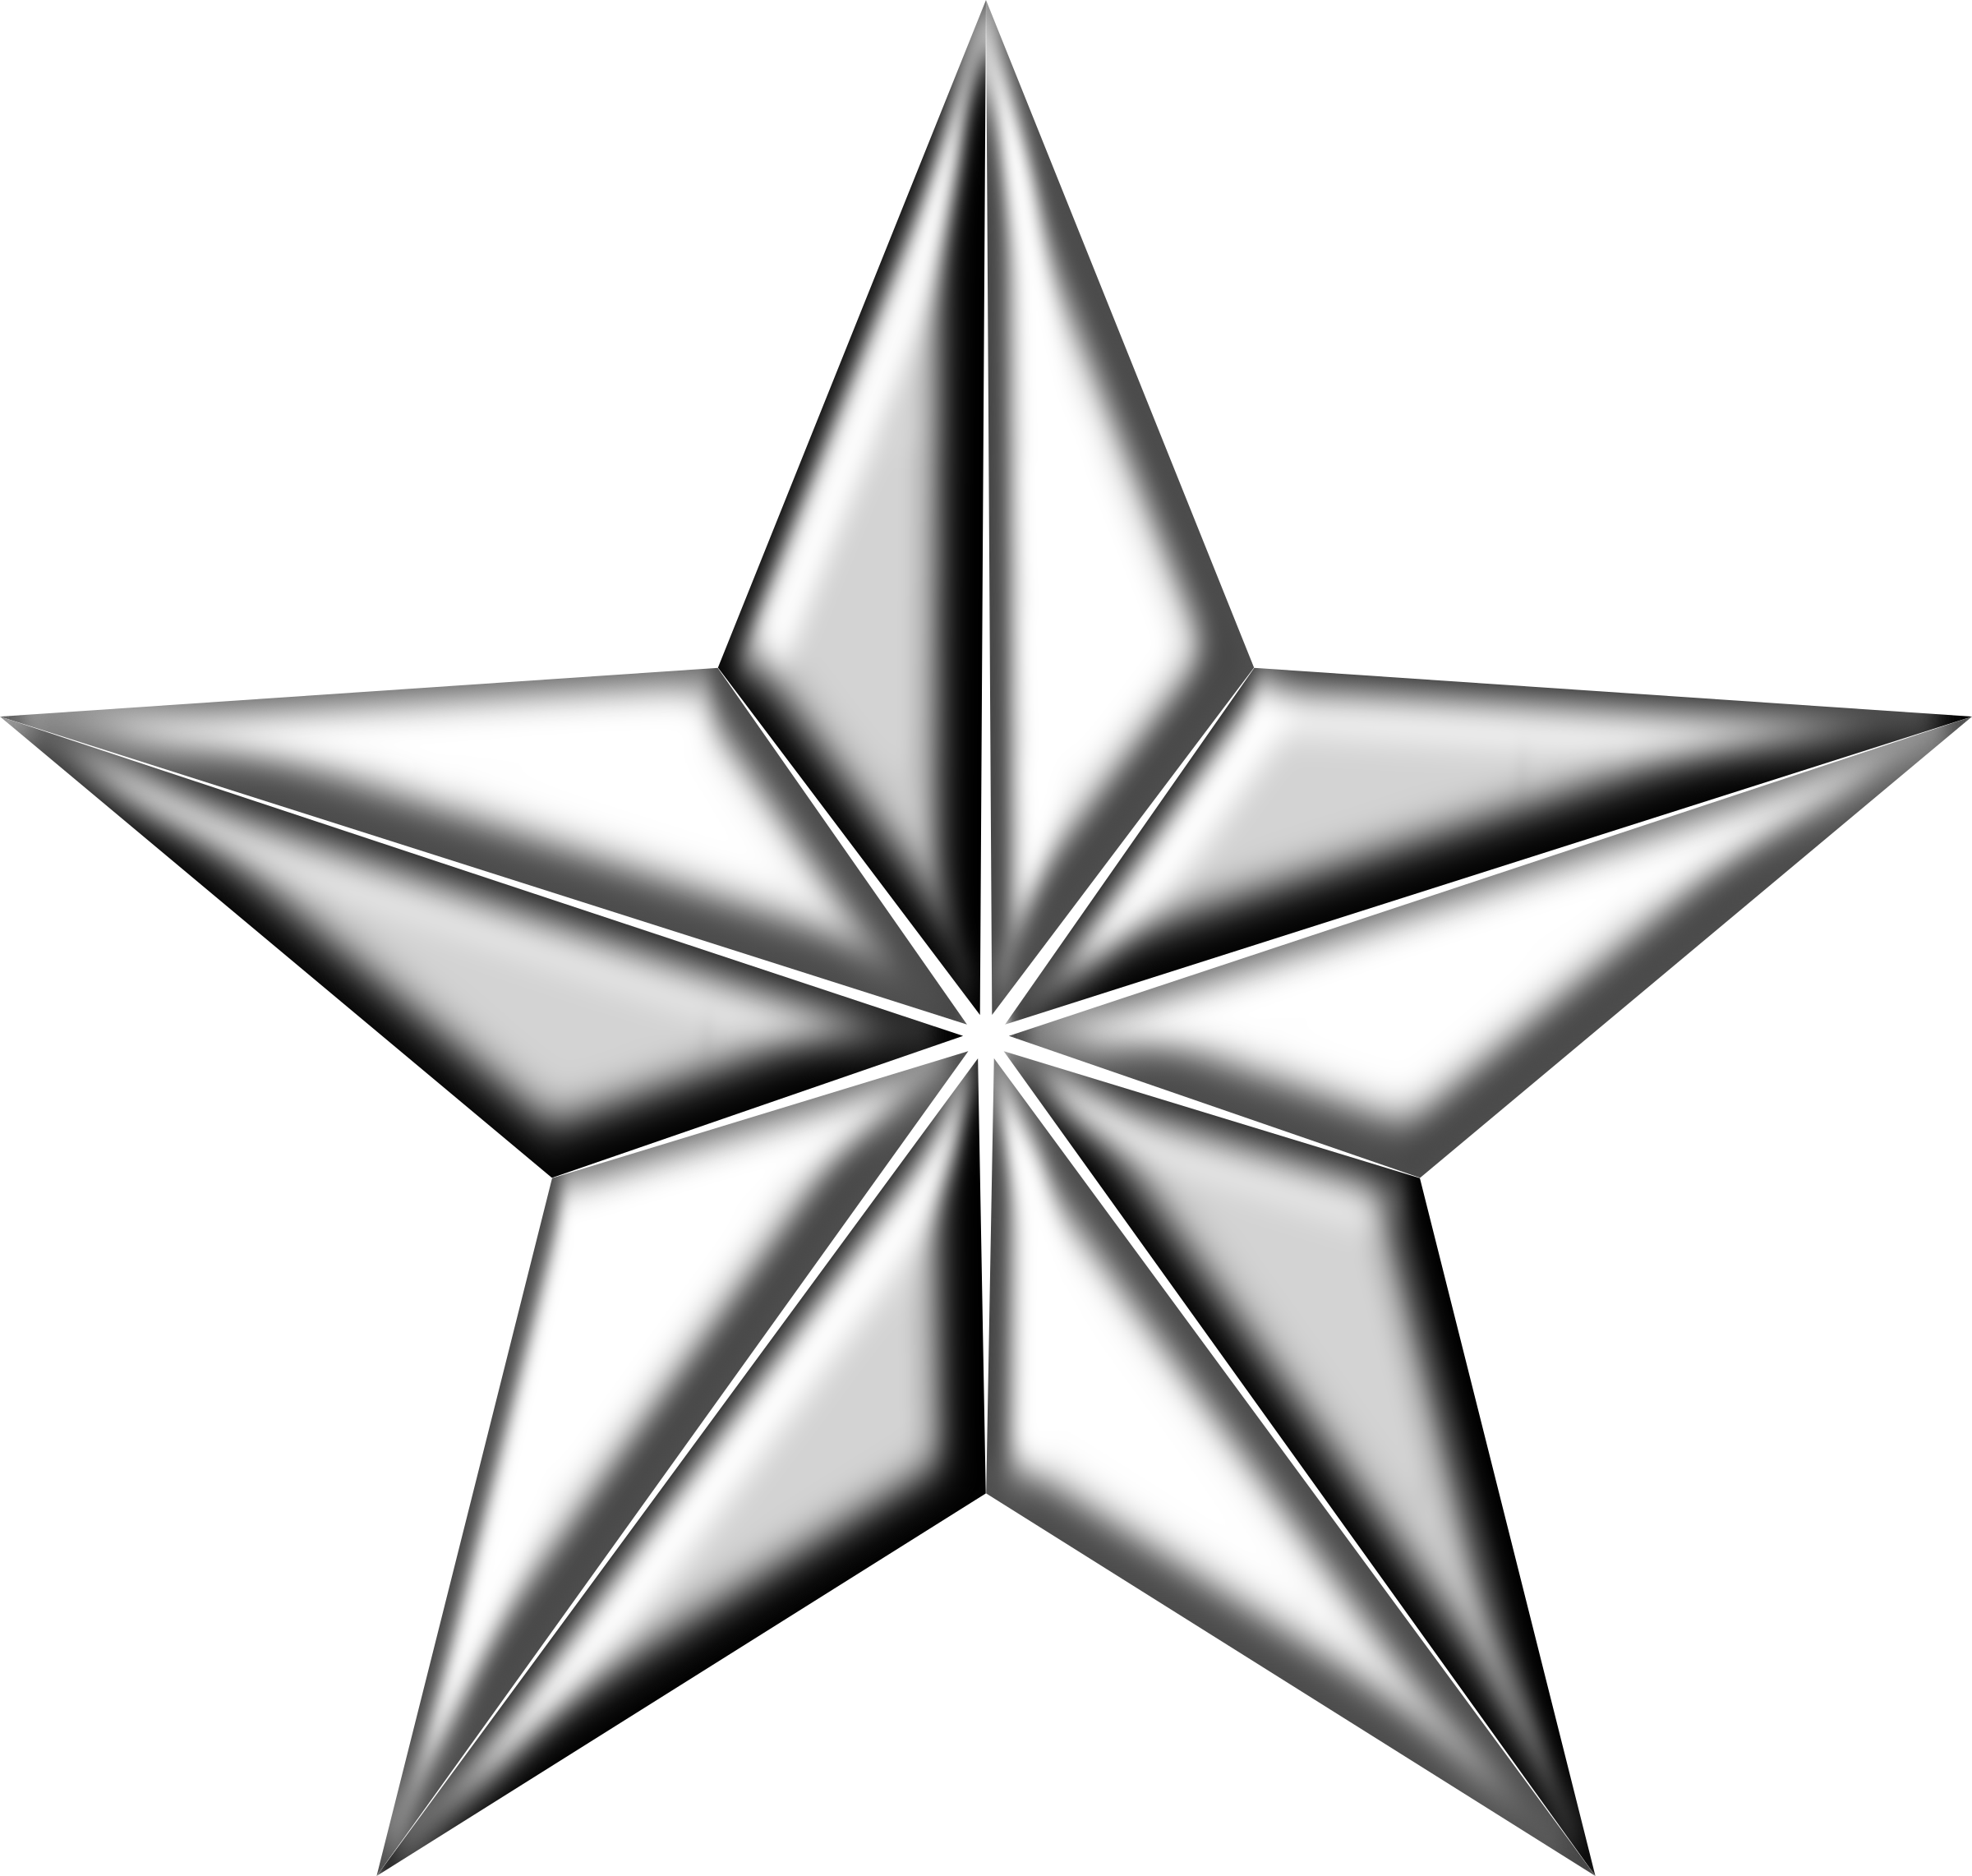 Clipart silver star image transparent library Clipart - 3D segmented silver star image transparent library